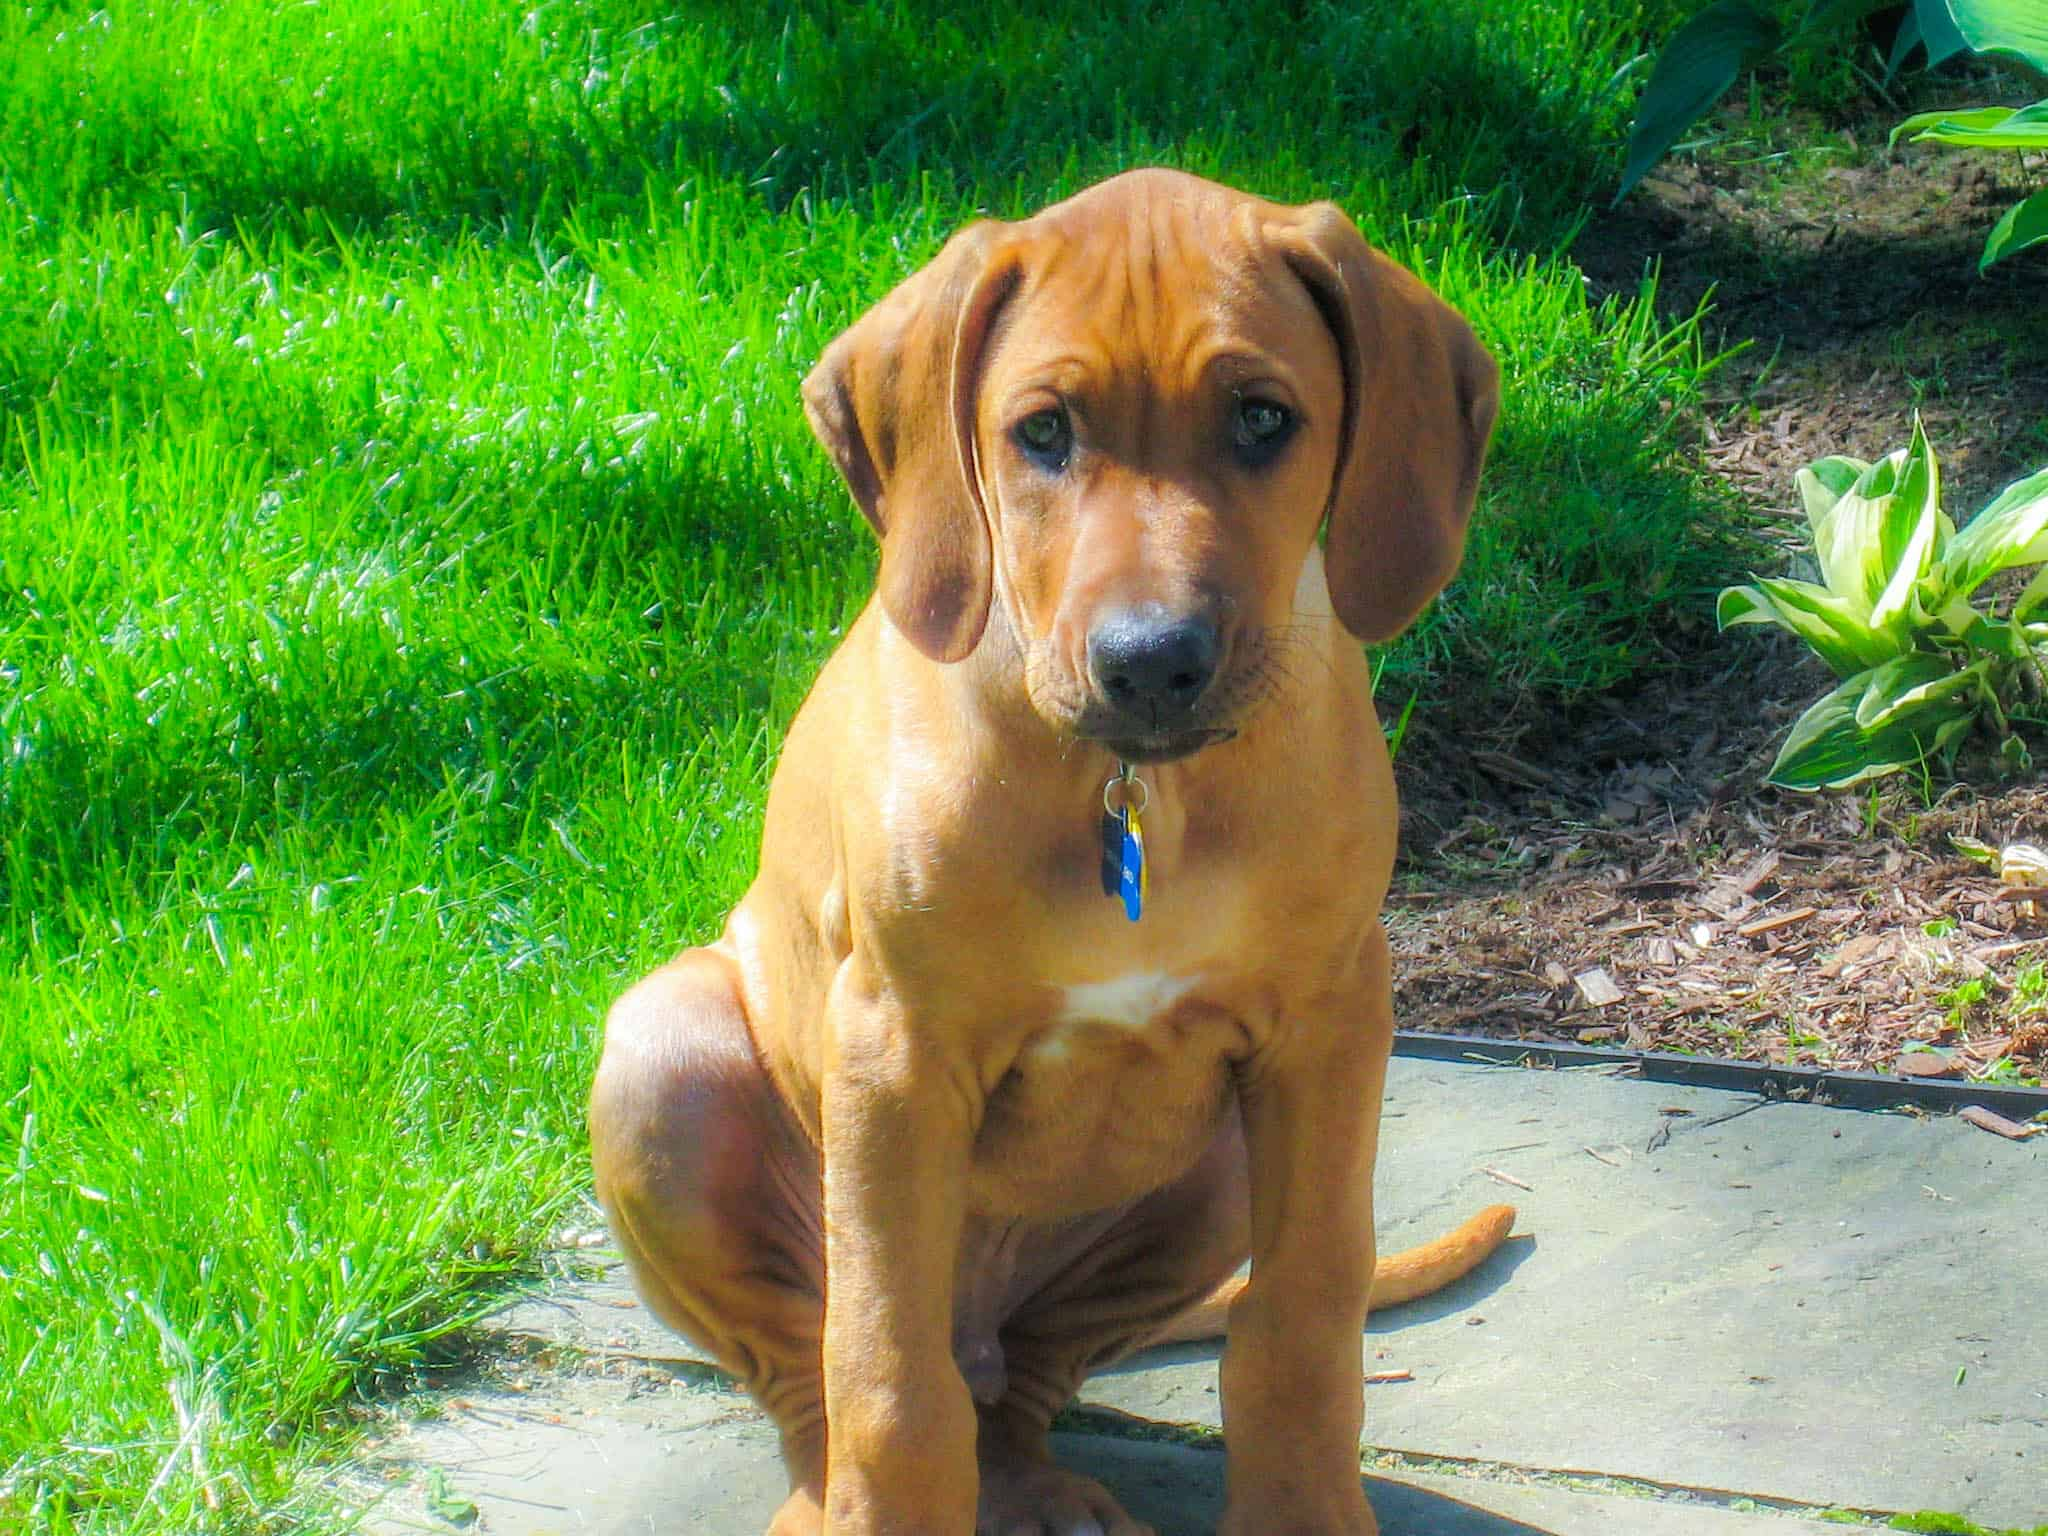 Rhodesian Ridgeback, Rhodesian Ridgeback puppy, Rhodesian Ridgeback photo, dog adventure, dog blog, marking our territory, petcentric